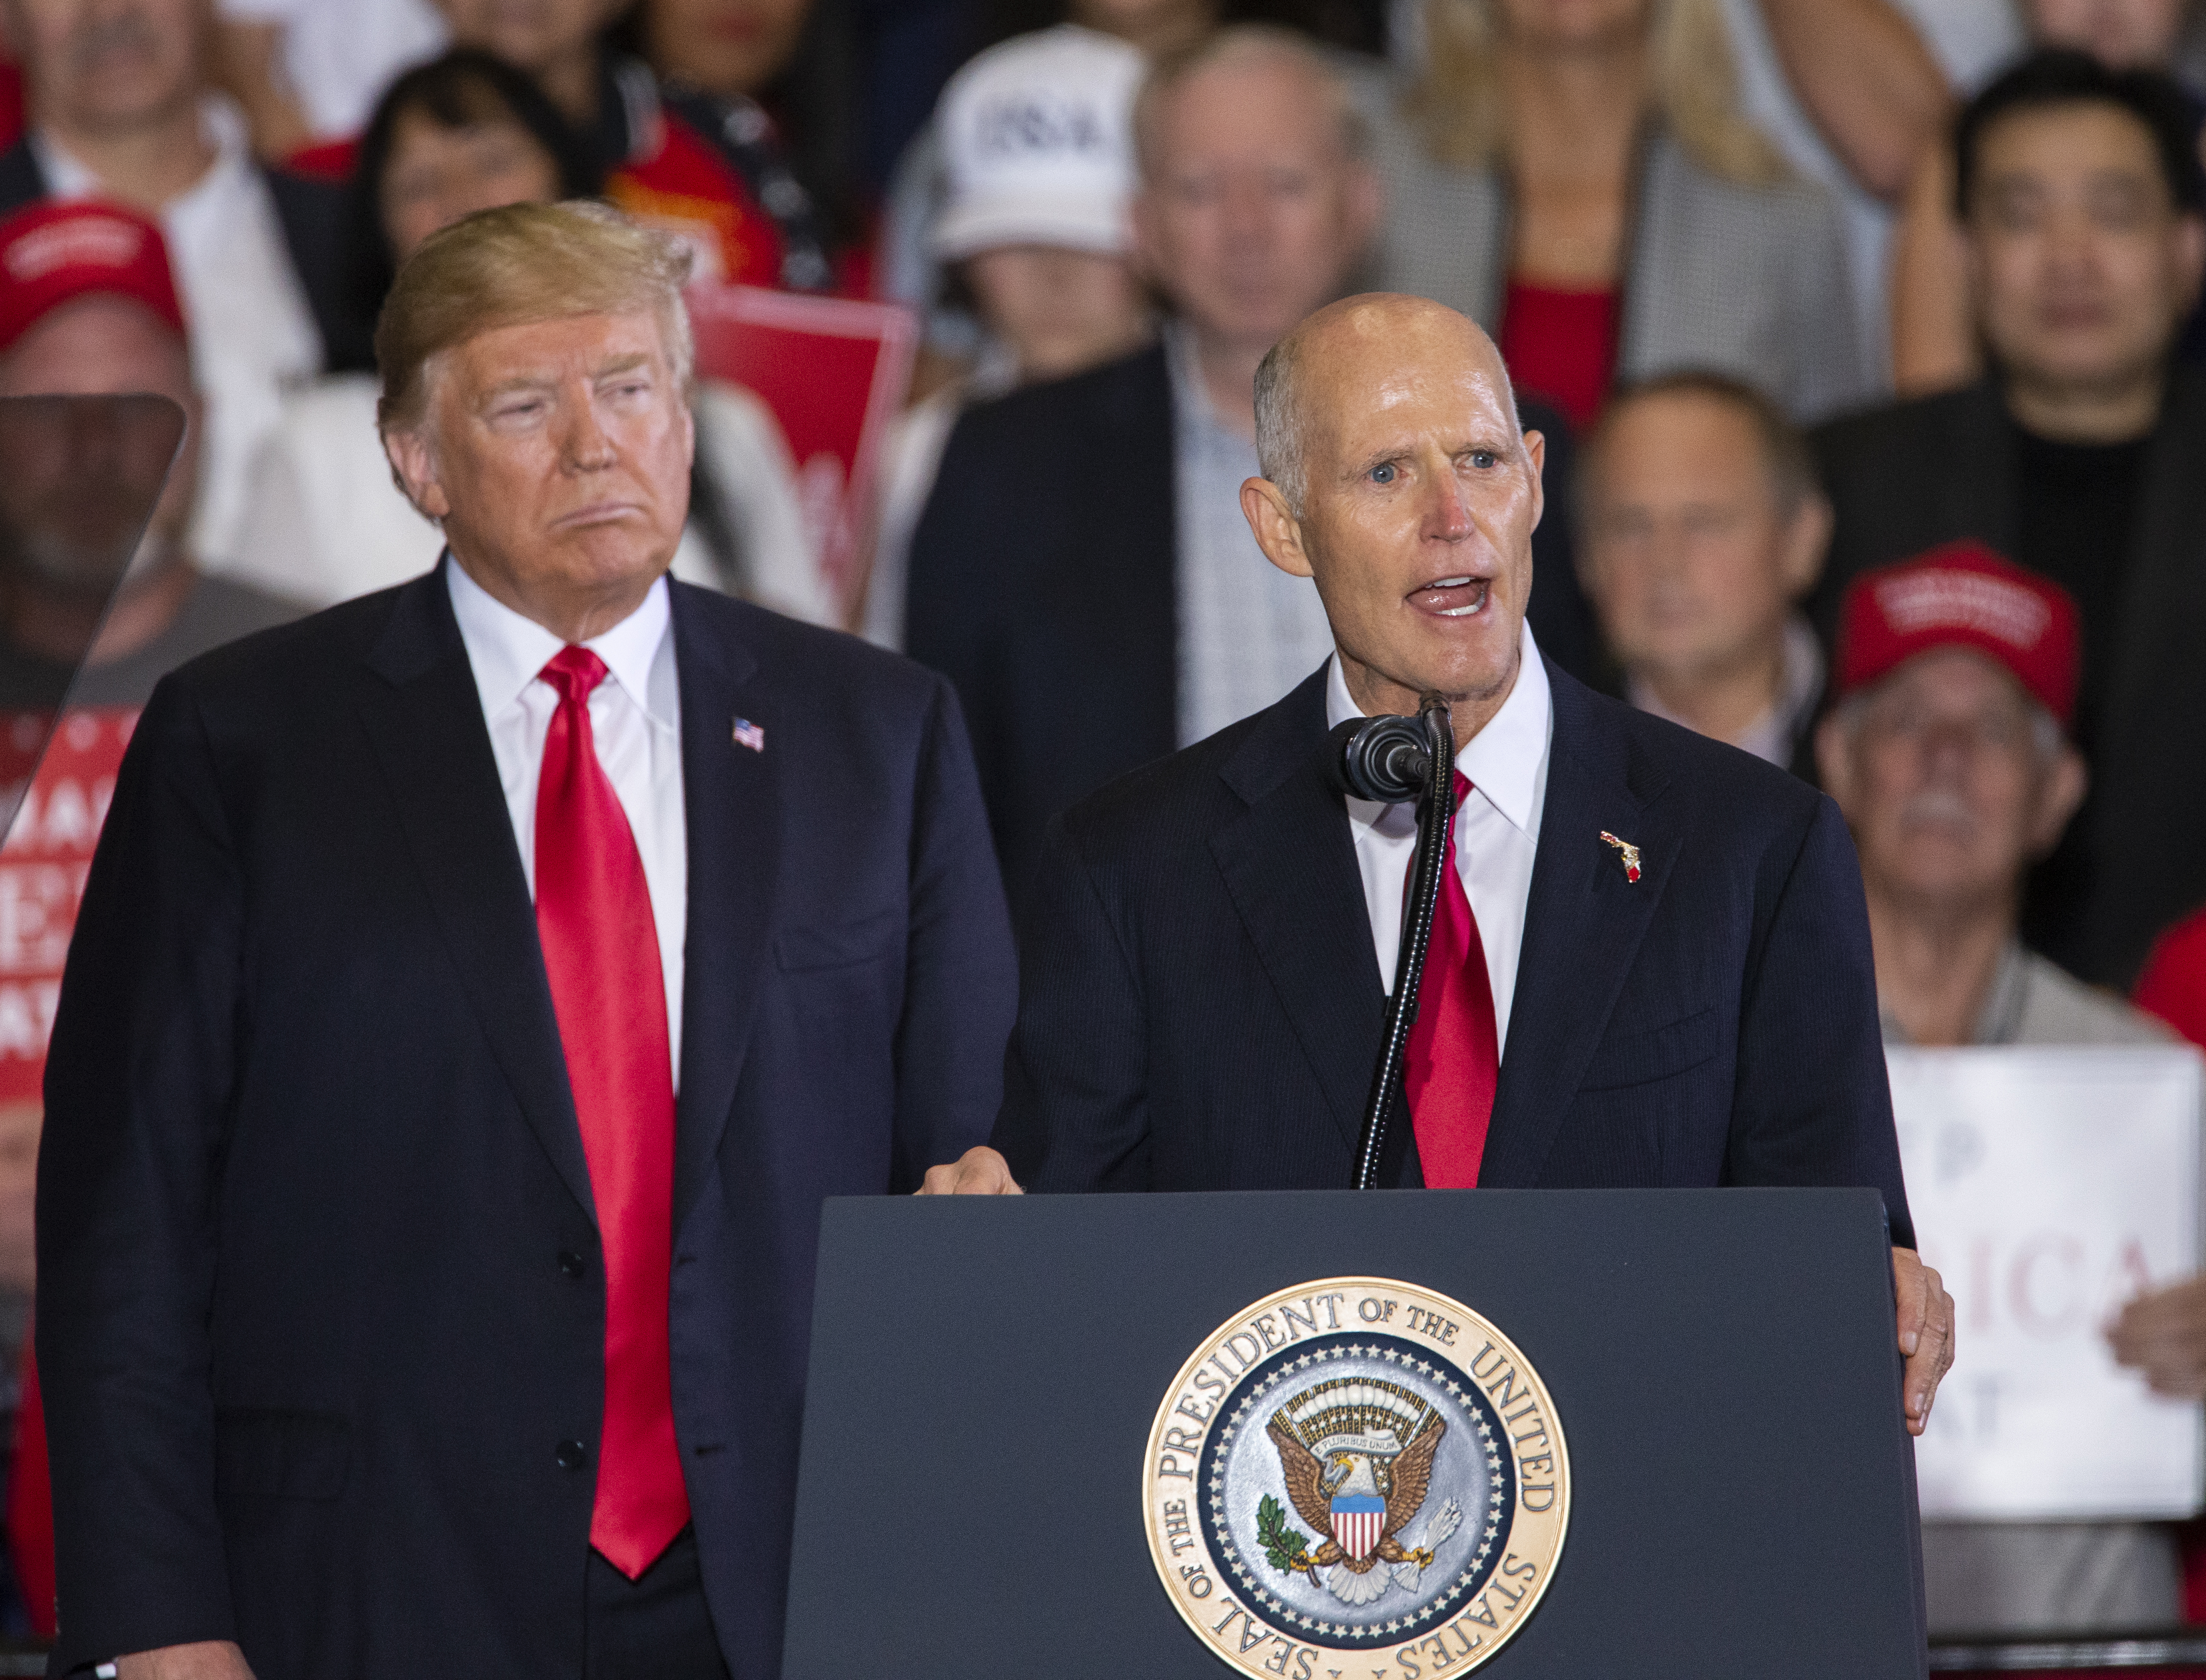 Florida governor and US senatorial candidate Rick Scott speaks with U.S. President Donald Trump at a campaign rally at the Pensacola International Airport on November 3, 2018 in Pensacola, Florida. Mark Wallheiser/Getty Images